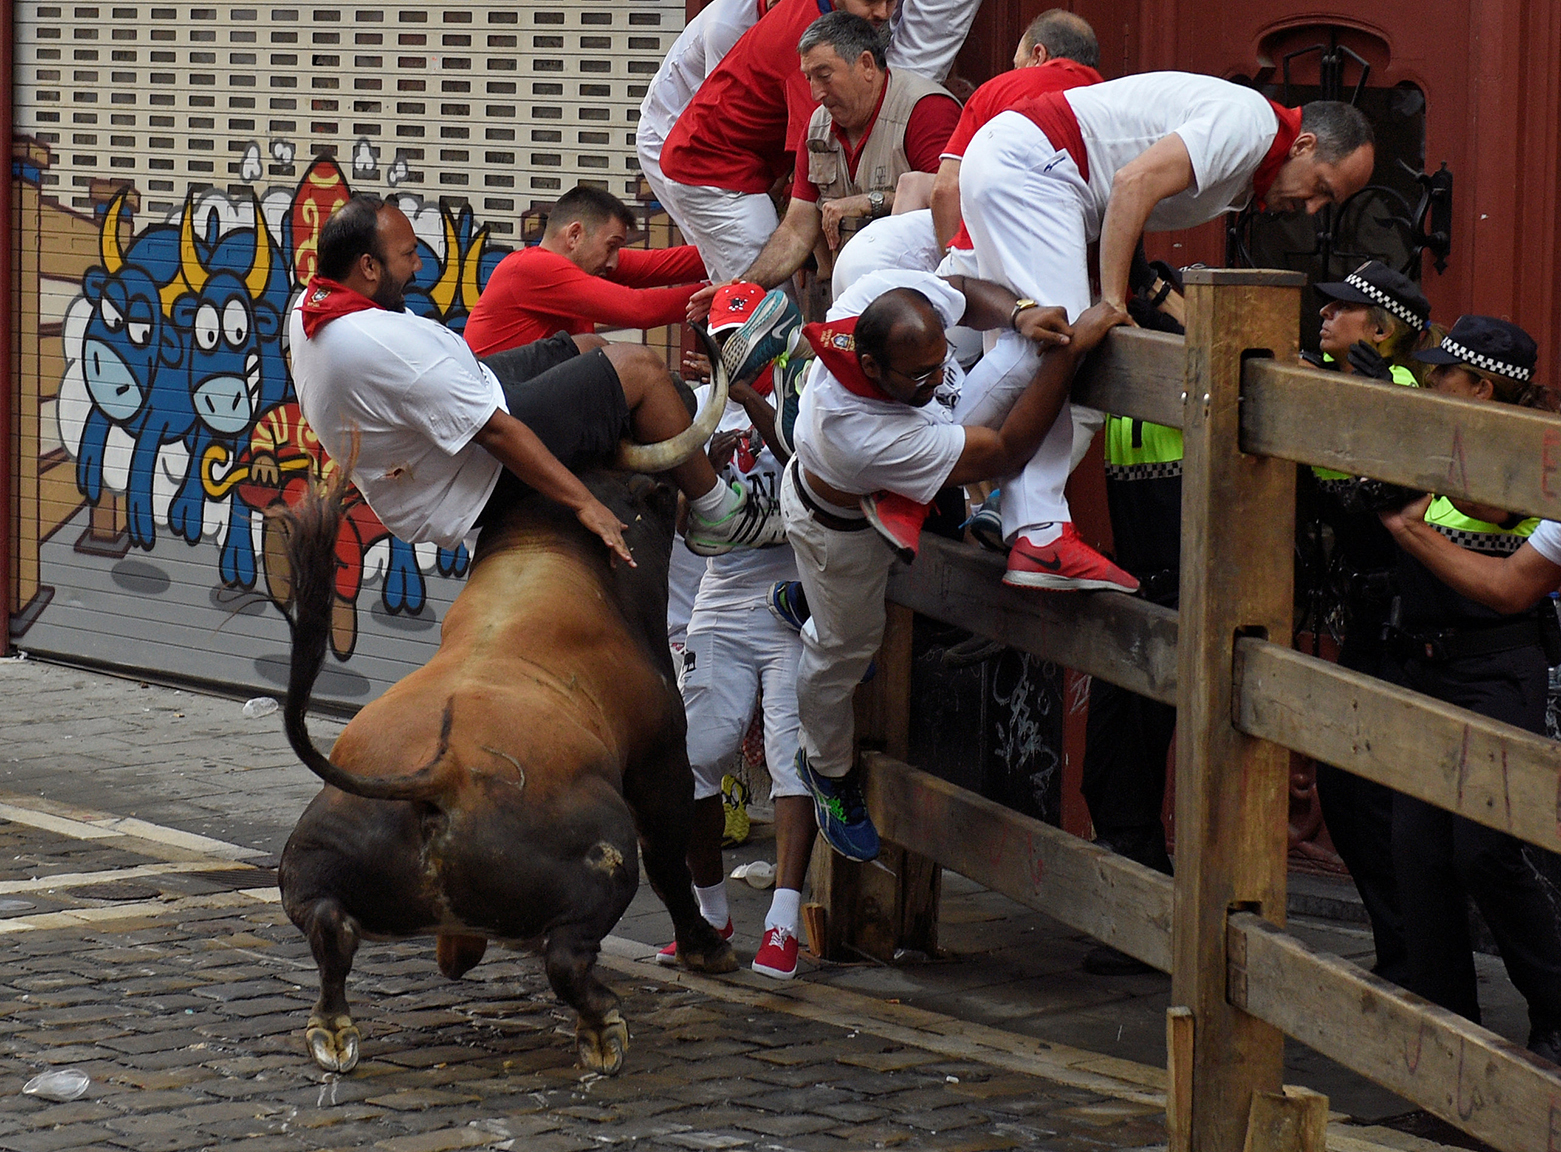 A runner is thrown by a Cebada Gago fighting bull at Estafeta corner during the second running of the bulls at the San Fermin festival in Pamplona